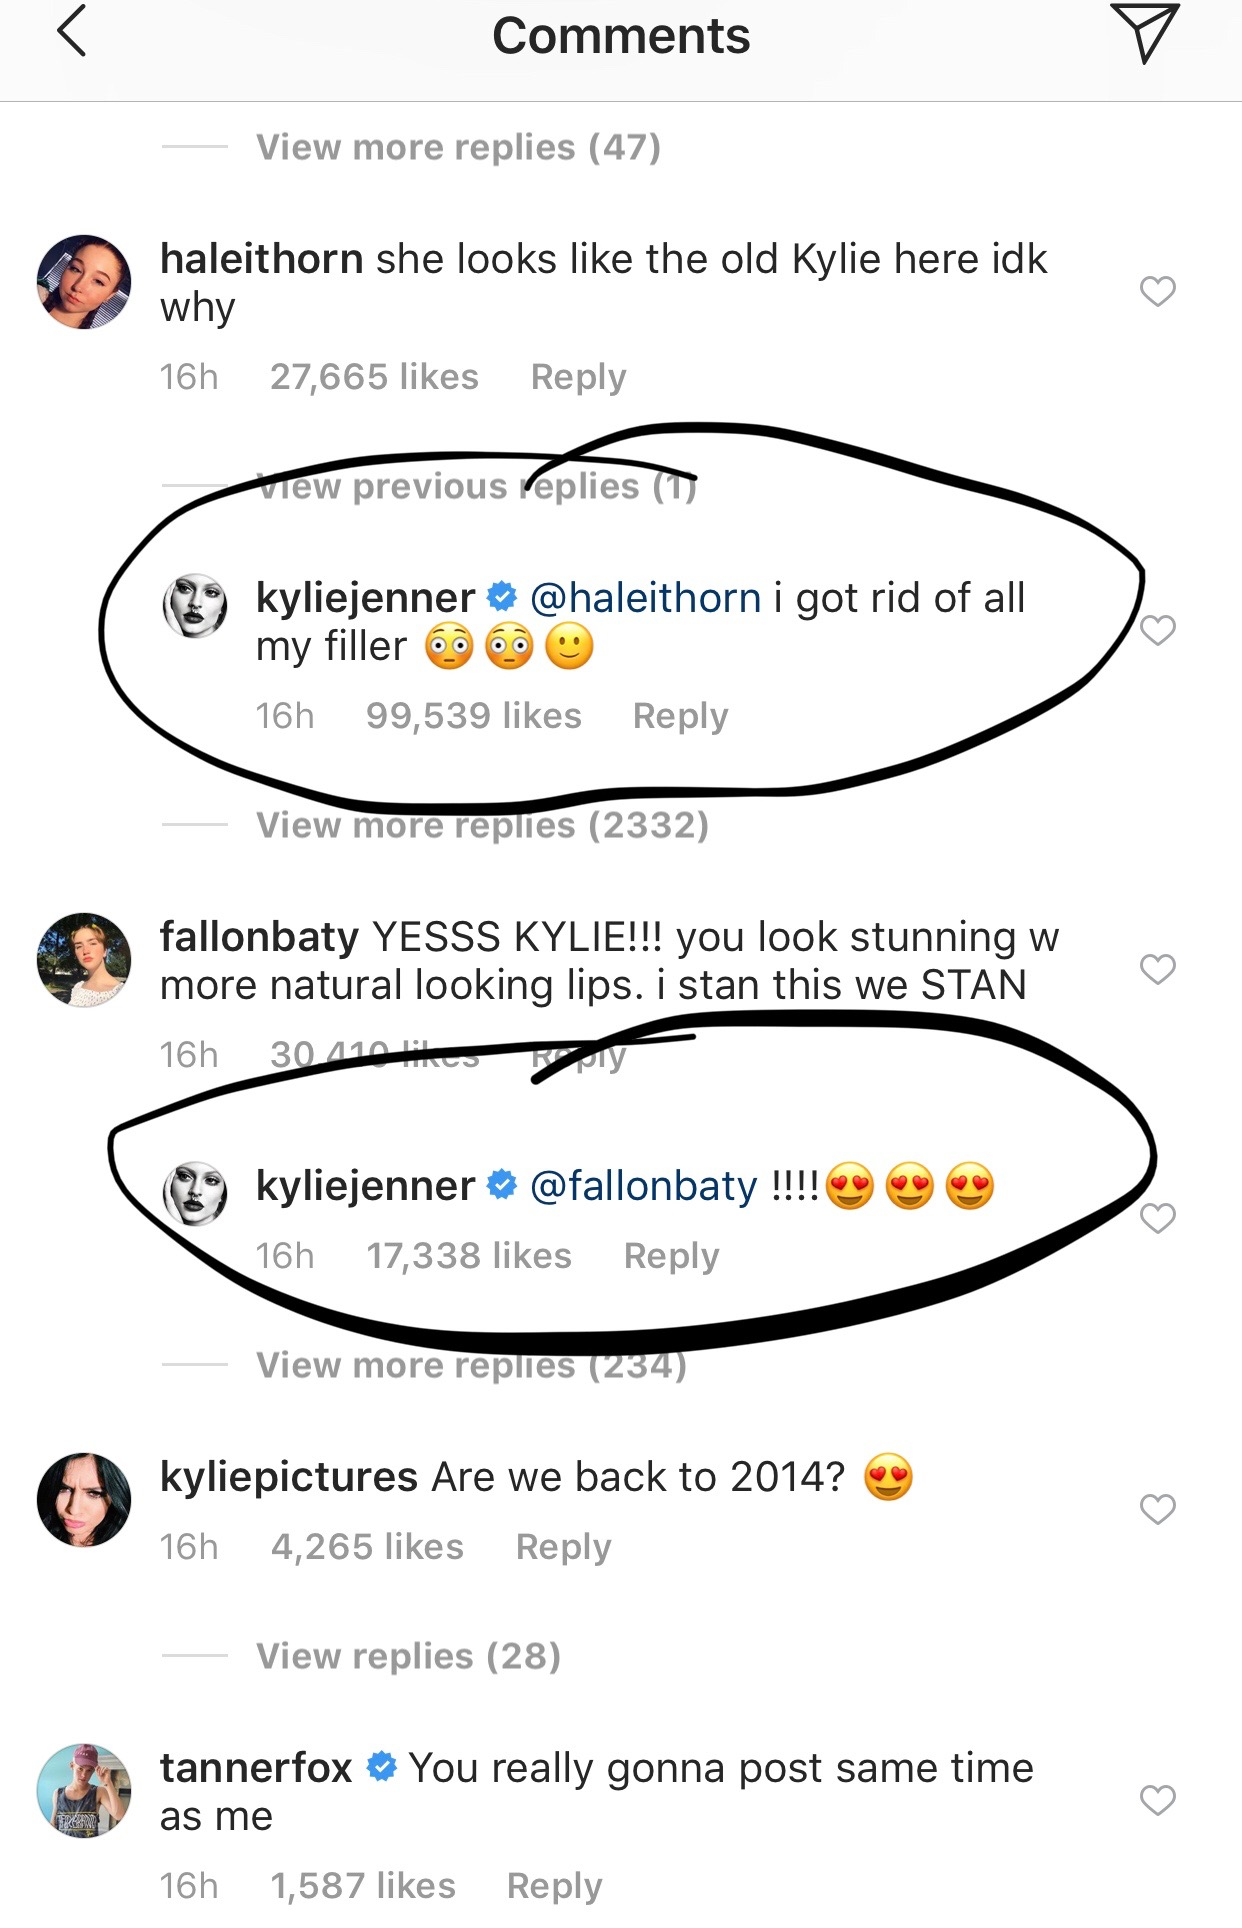 kylie jenner lip filler comment screenshot